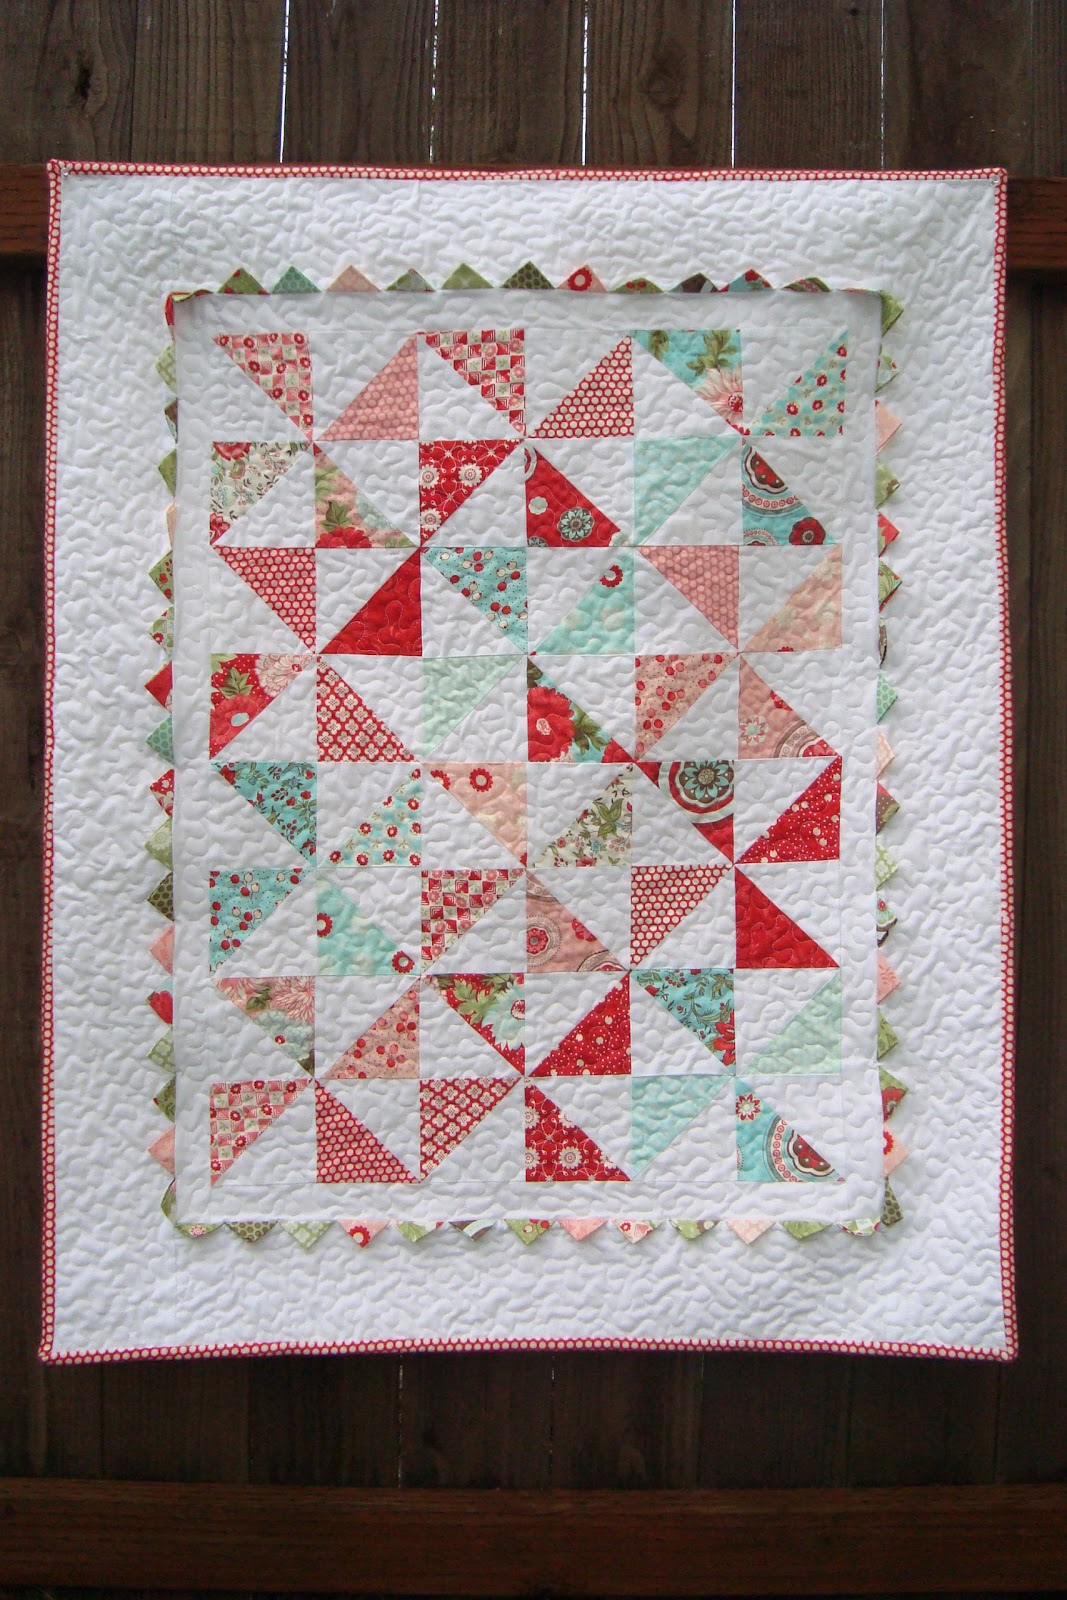 Steps to Make an Easy Baby Quilt